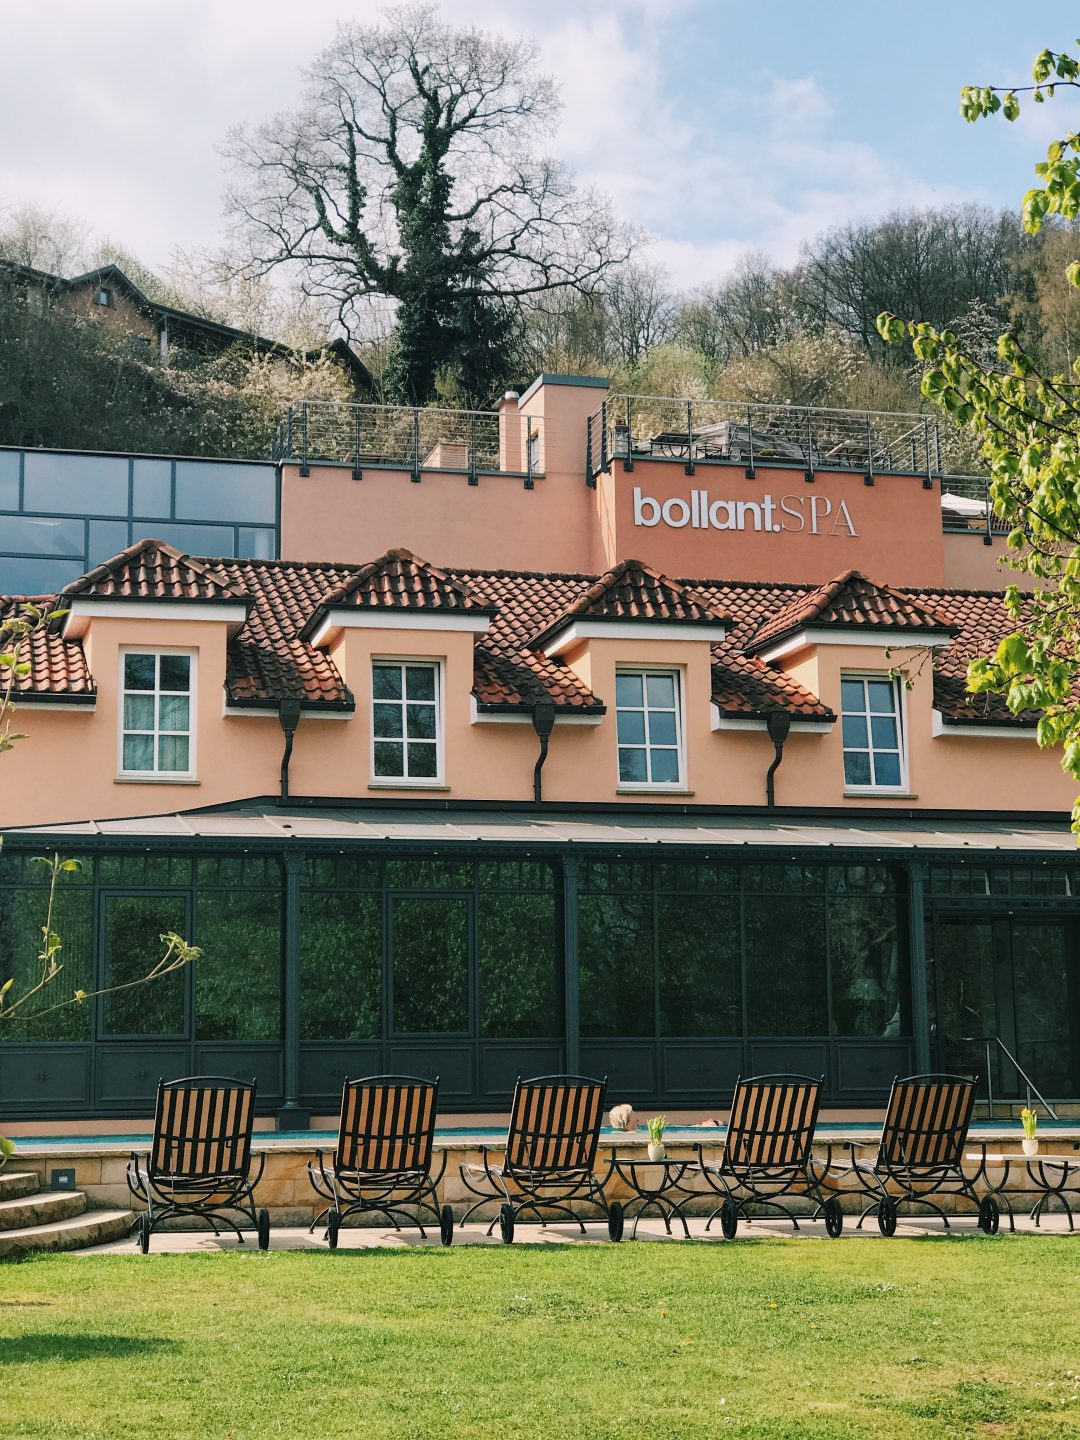 Bollants - A luxury getaway close to Frankfurt